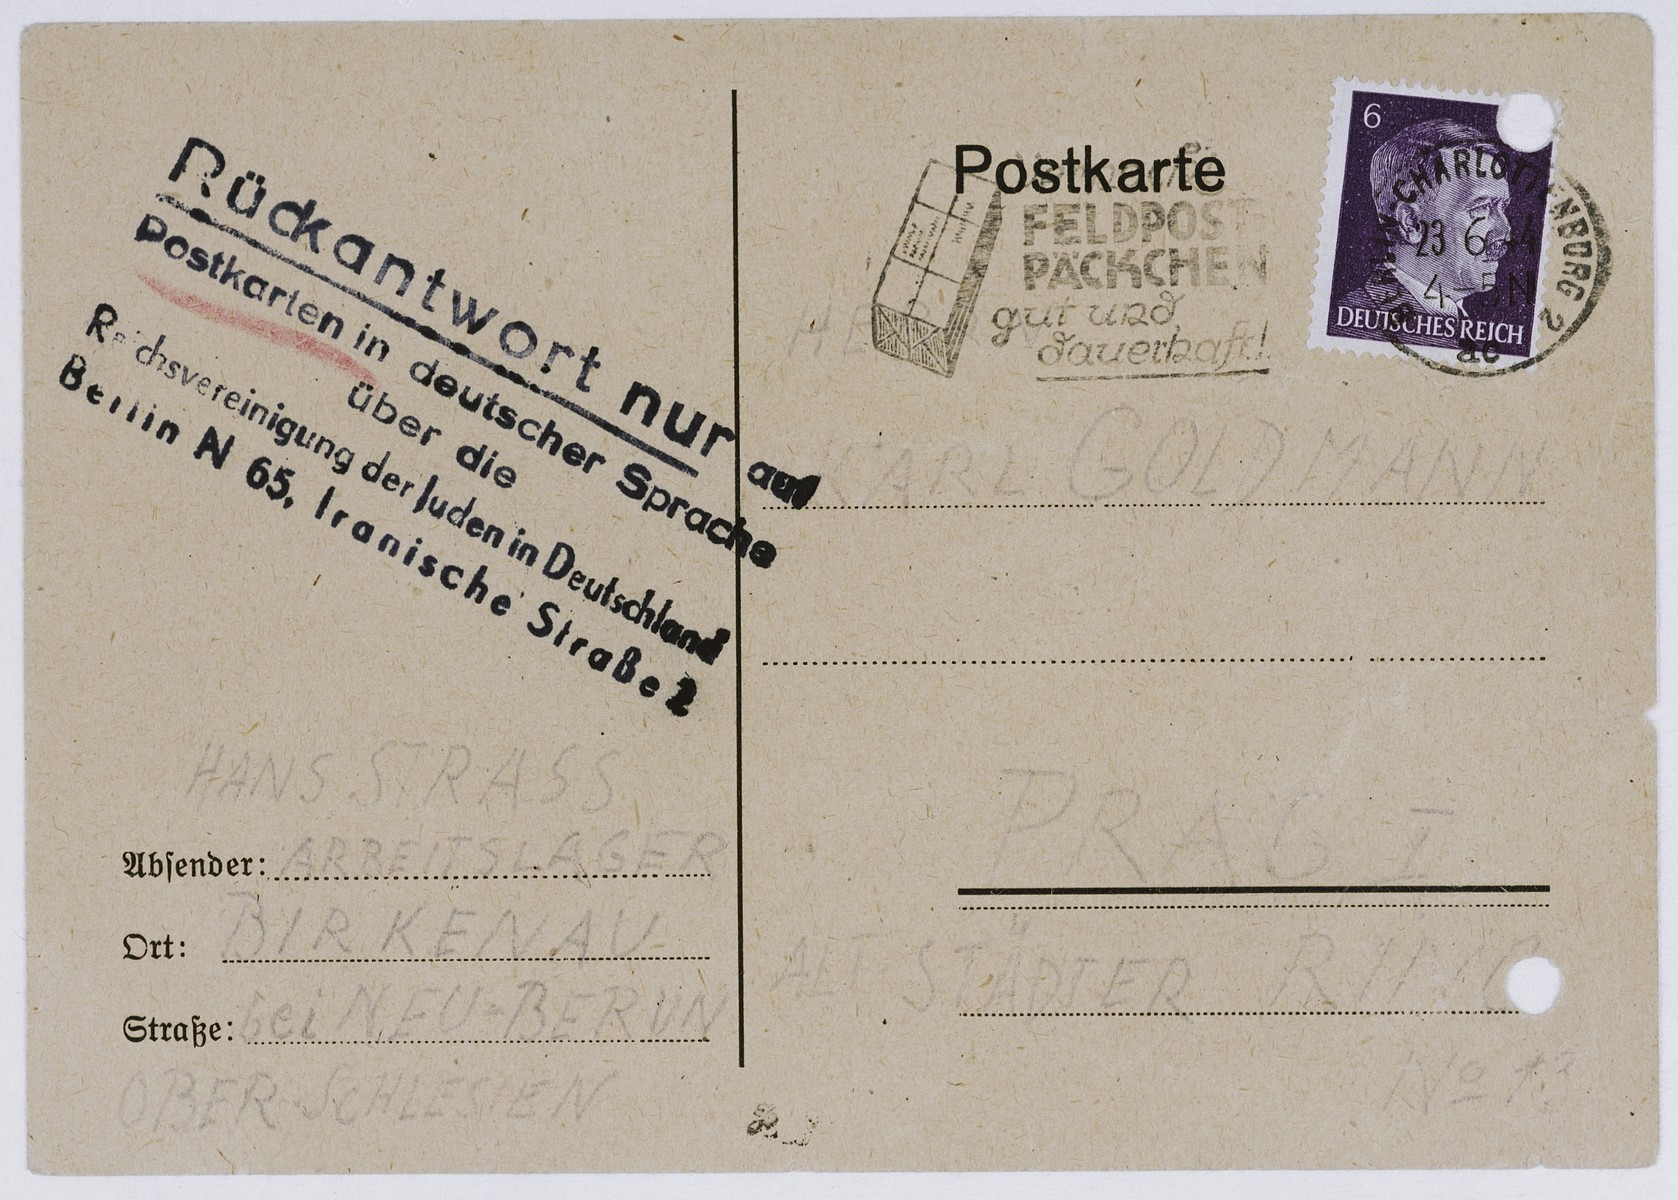 Postcard sent by a new arrival to Auschwitz to a relative in Theresienstadt reassuring him that everything was fine.  Some inmates were forced to write these cards to maintain the deception that deportations to Auschwitz signified nothing dangerous.